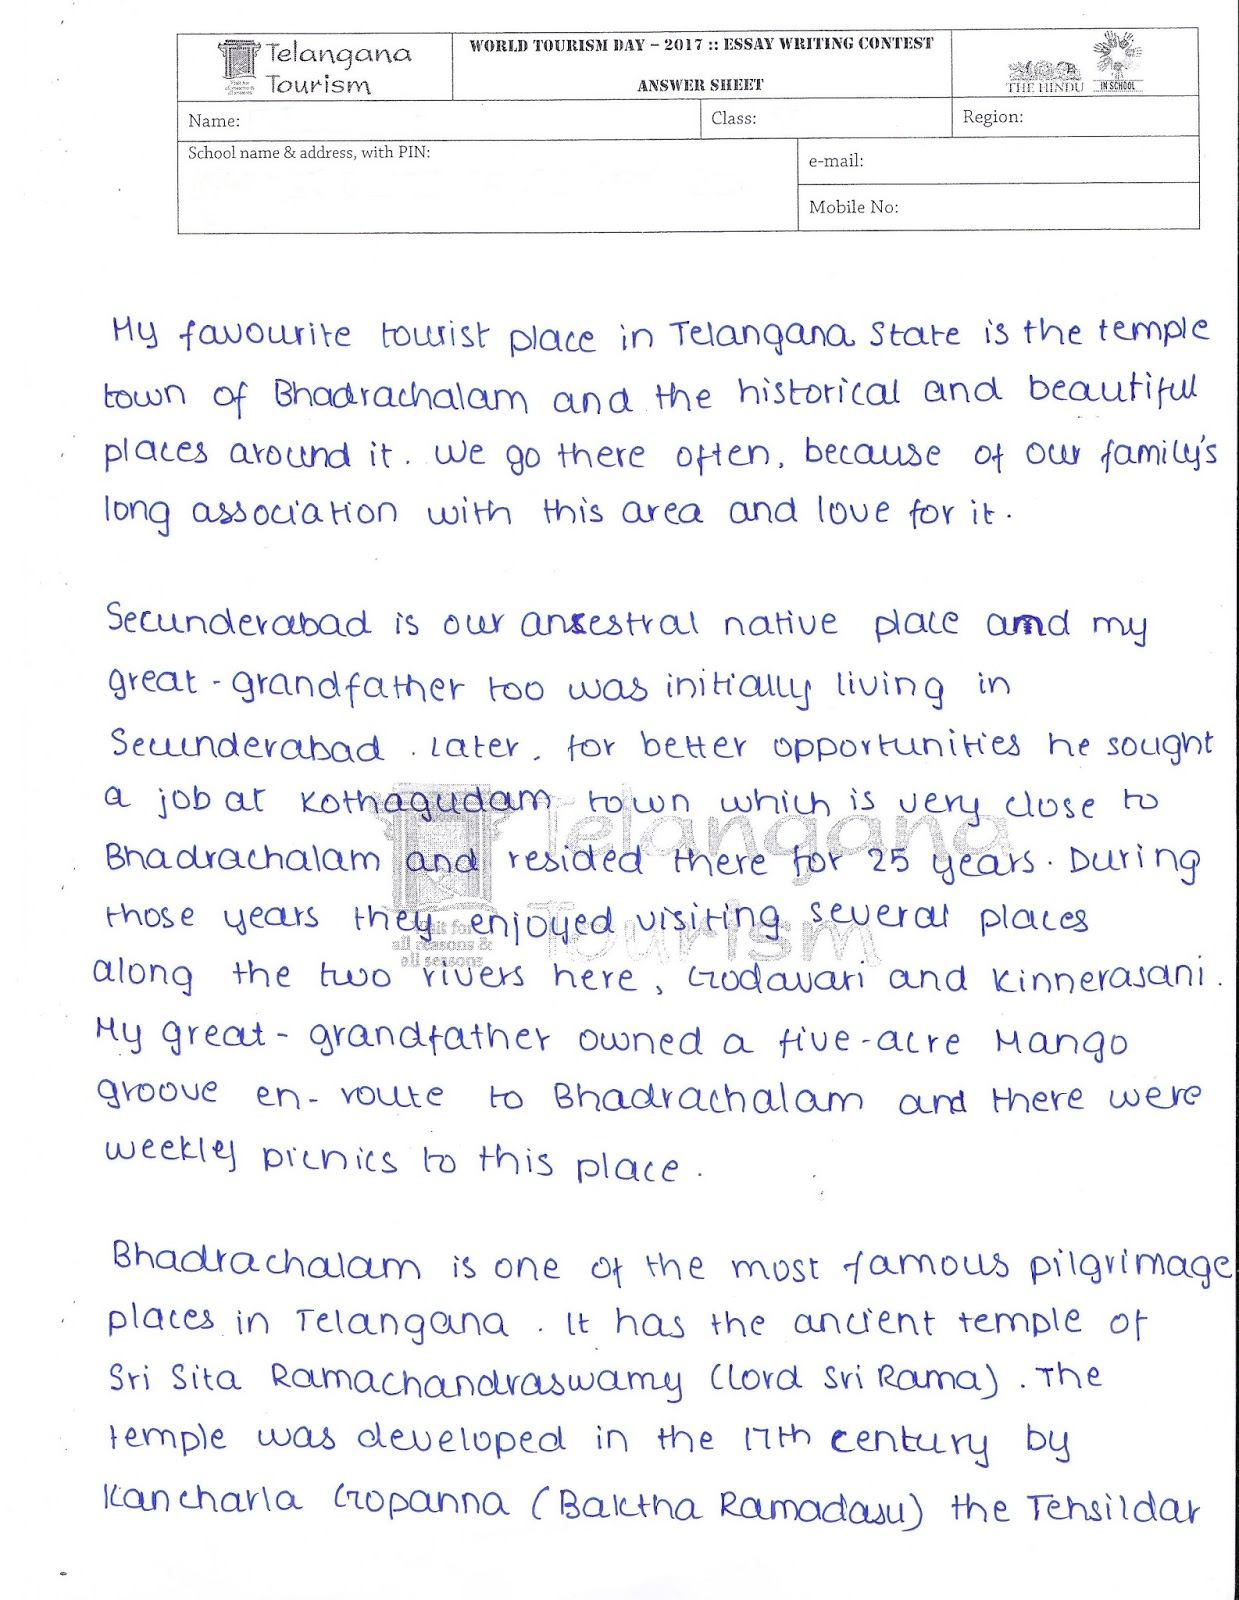 raghu s column world tourism day  here is her essay the results are awaited below is the manuscript in three pages followed by the typed text